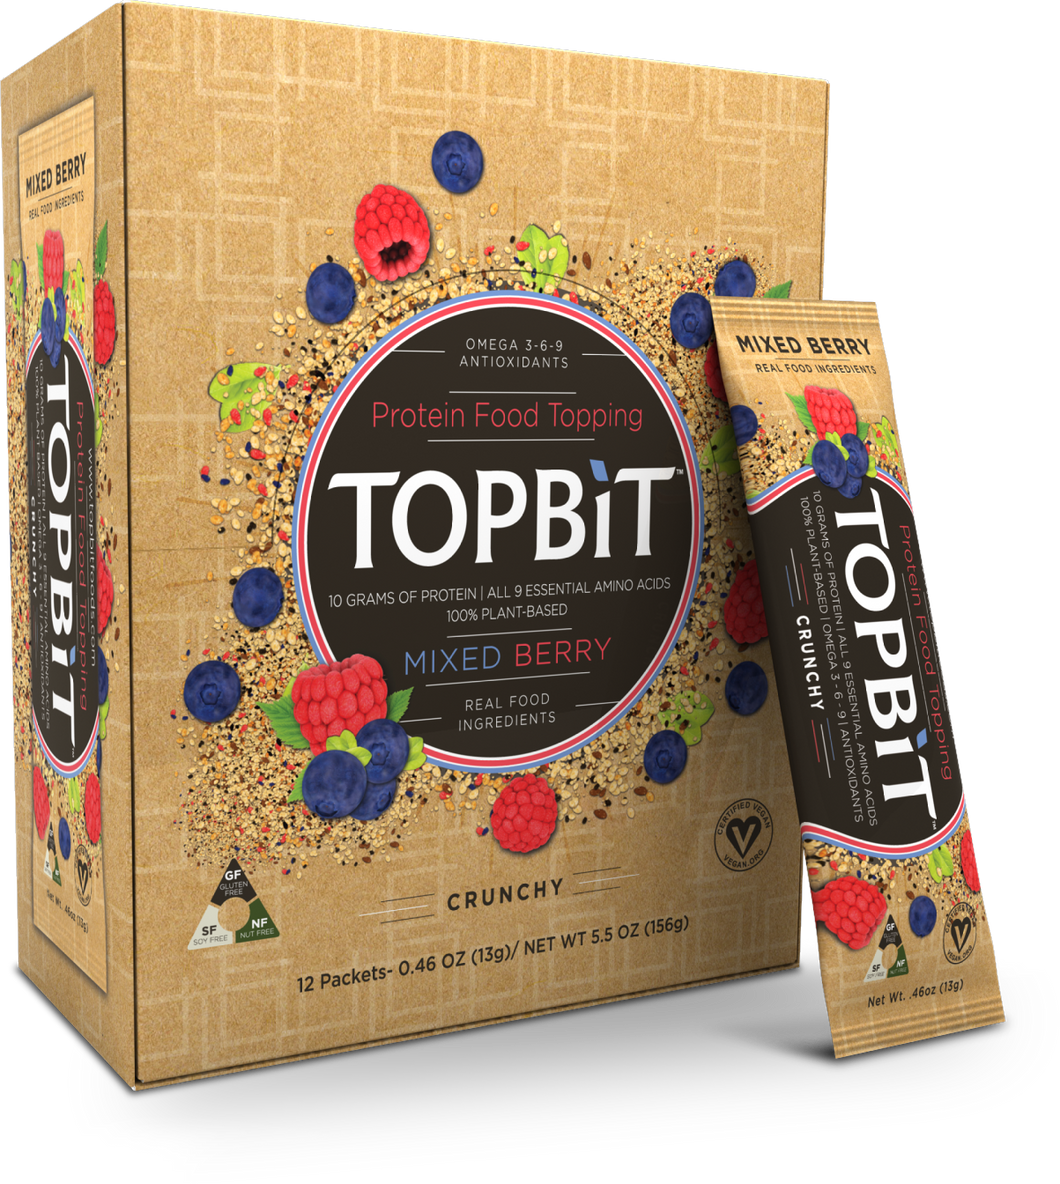 TOPBiT Protein Food Topping